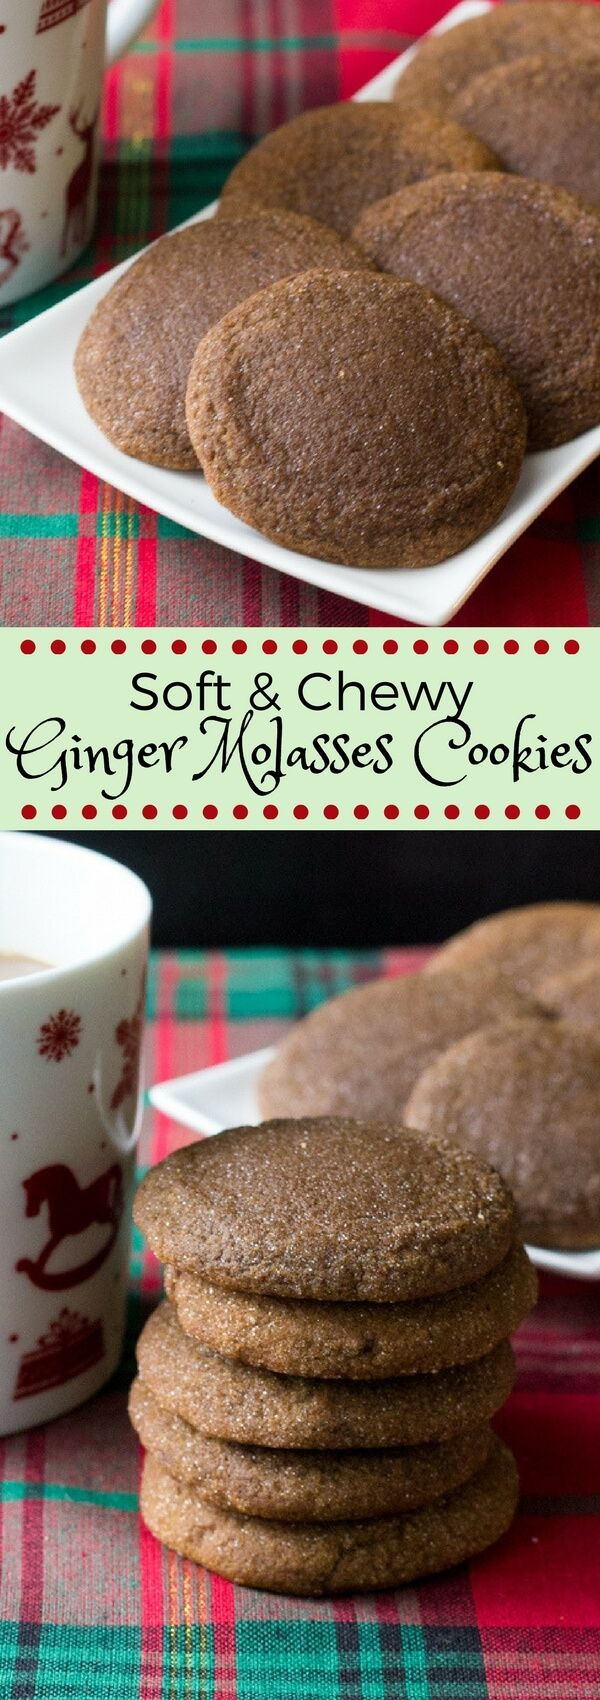 The softest, chewiest ginger molasses cookies. With brown sugar, molasses & lots of spices - this easy recipe is perfect for the holidays! #gingermolassescookies #gingerbread #gingercookies